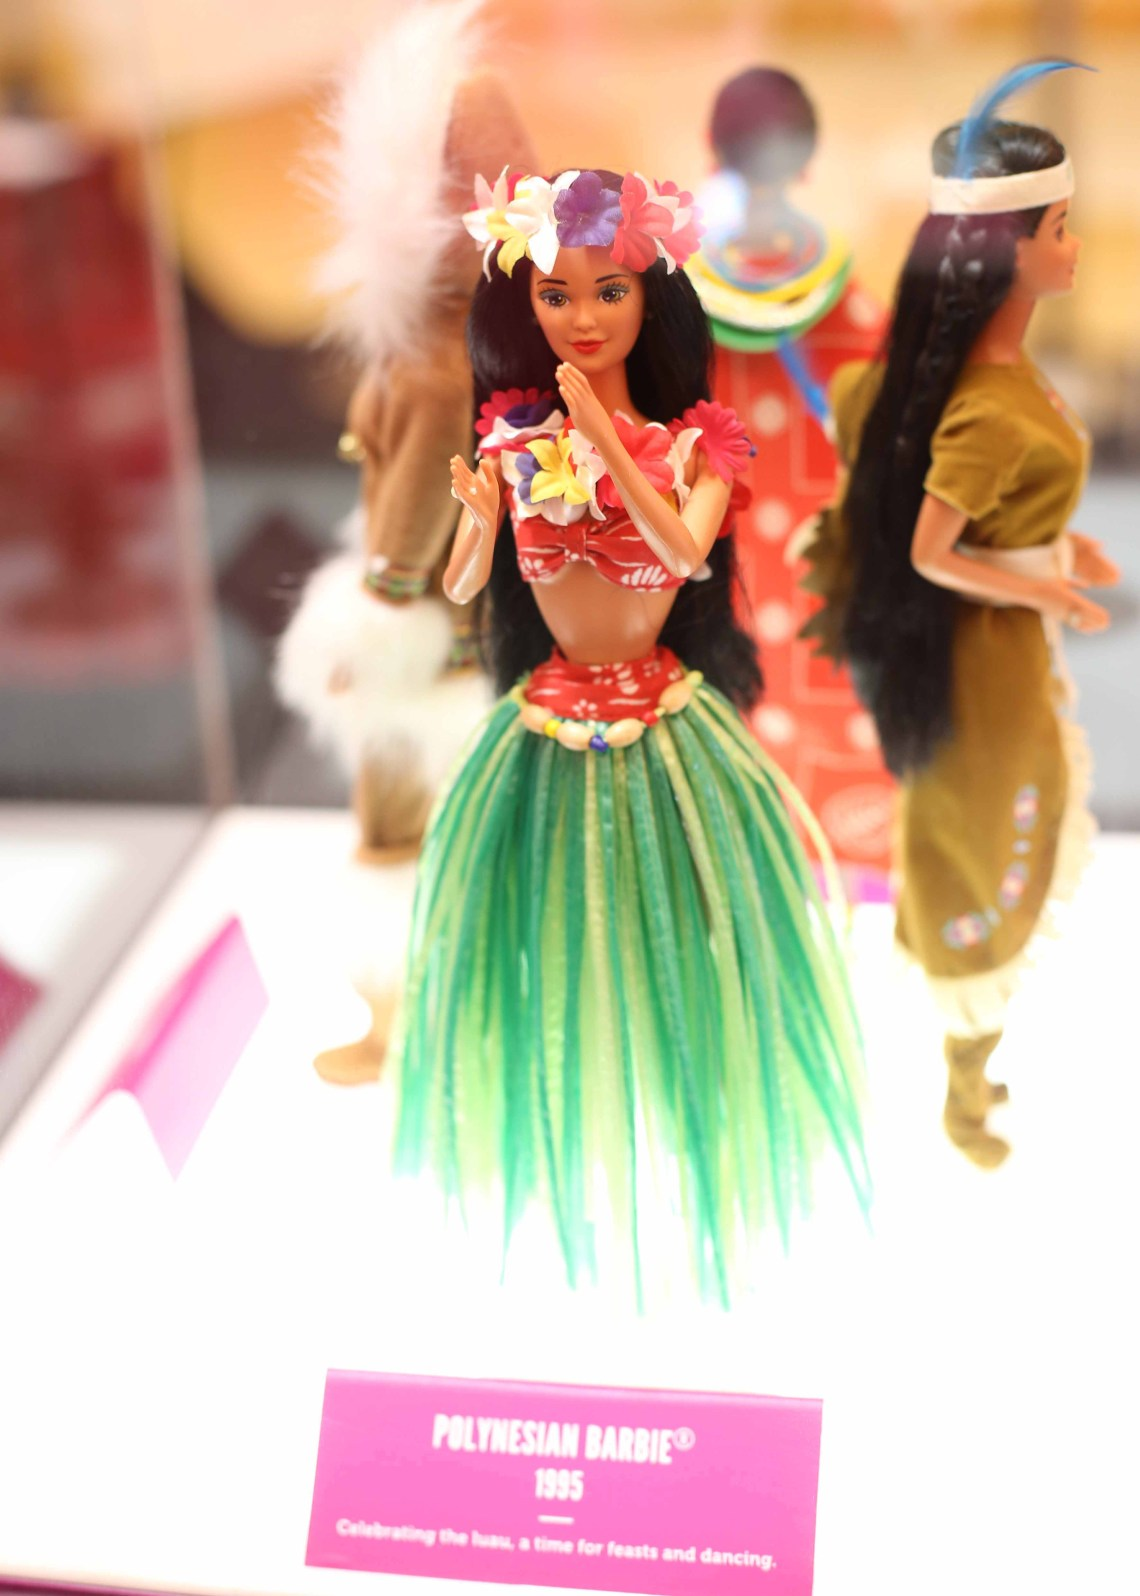 BARBIE_ World of Endless Possibilities Exhibition 19_smartdory 2016